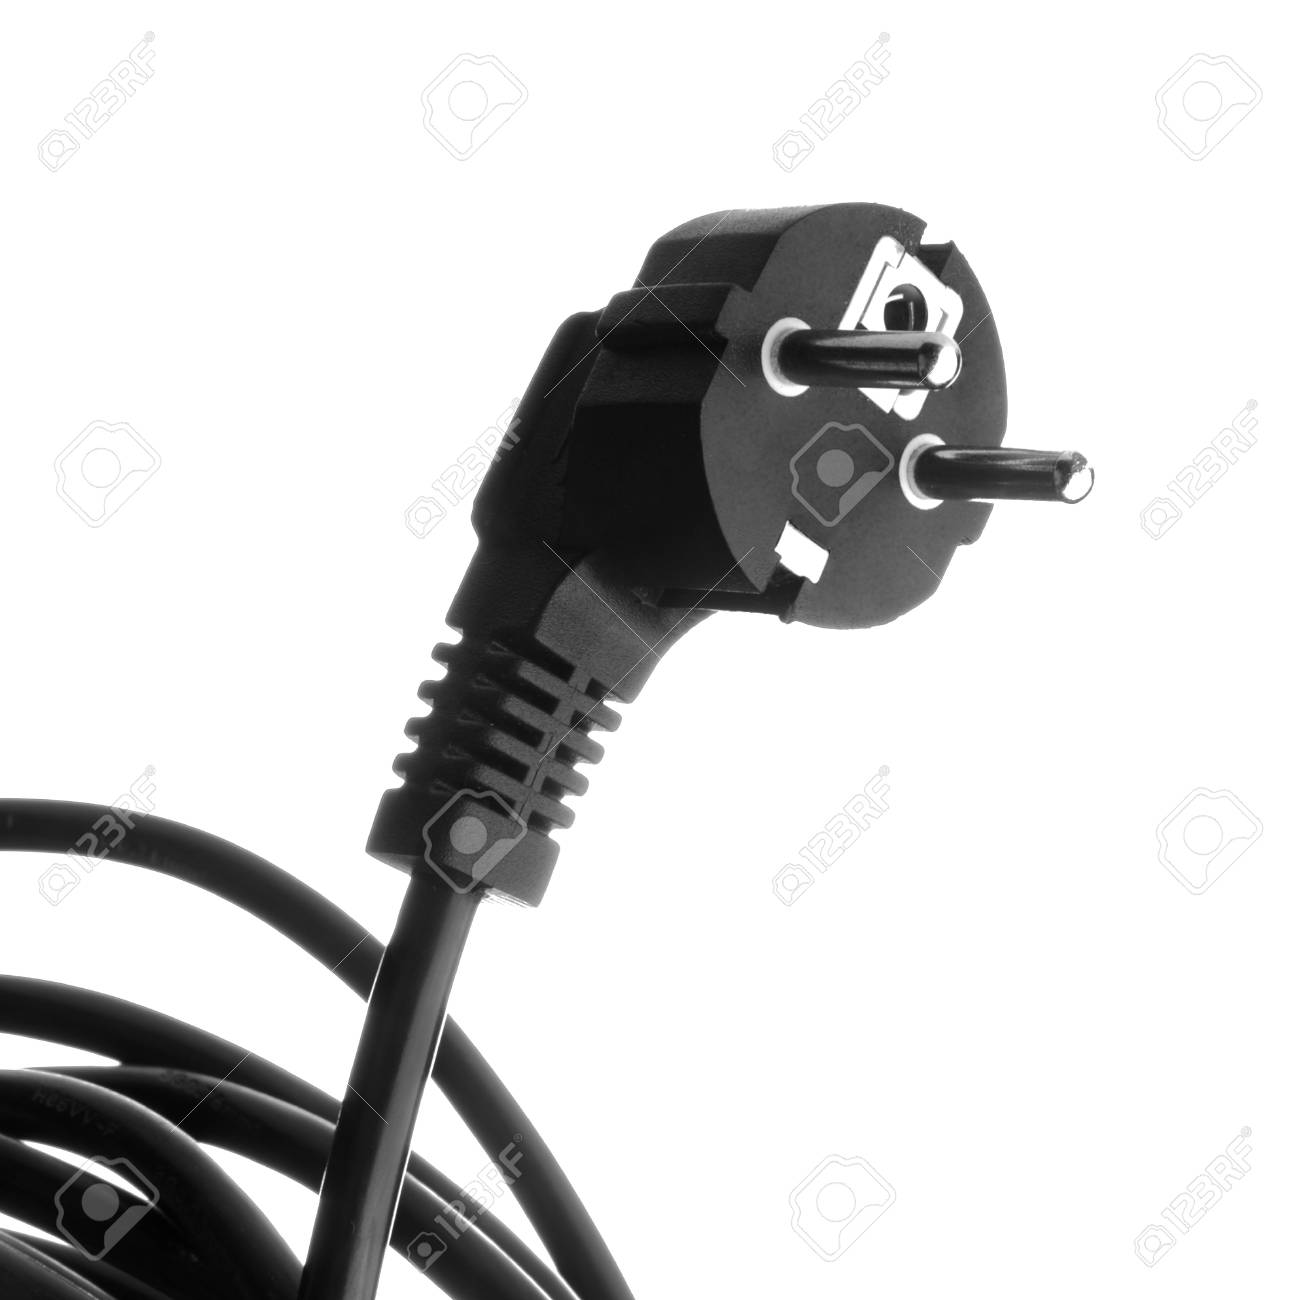 electrical cable with plug on white background Stock Photo - 14008687